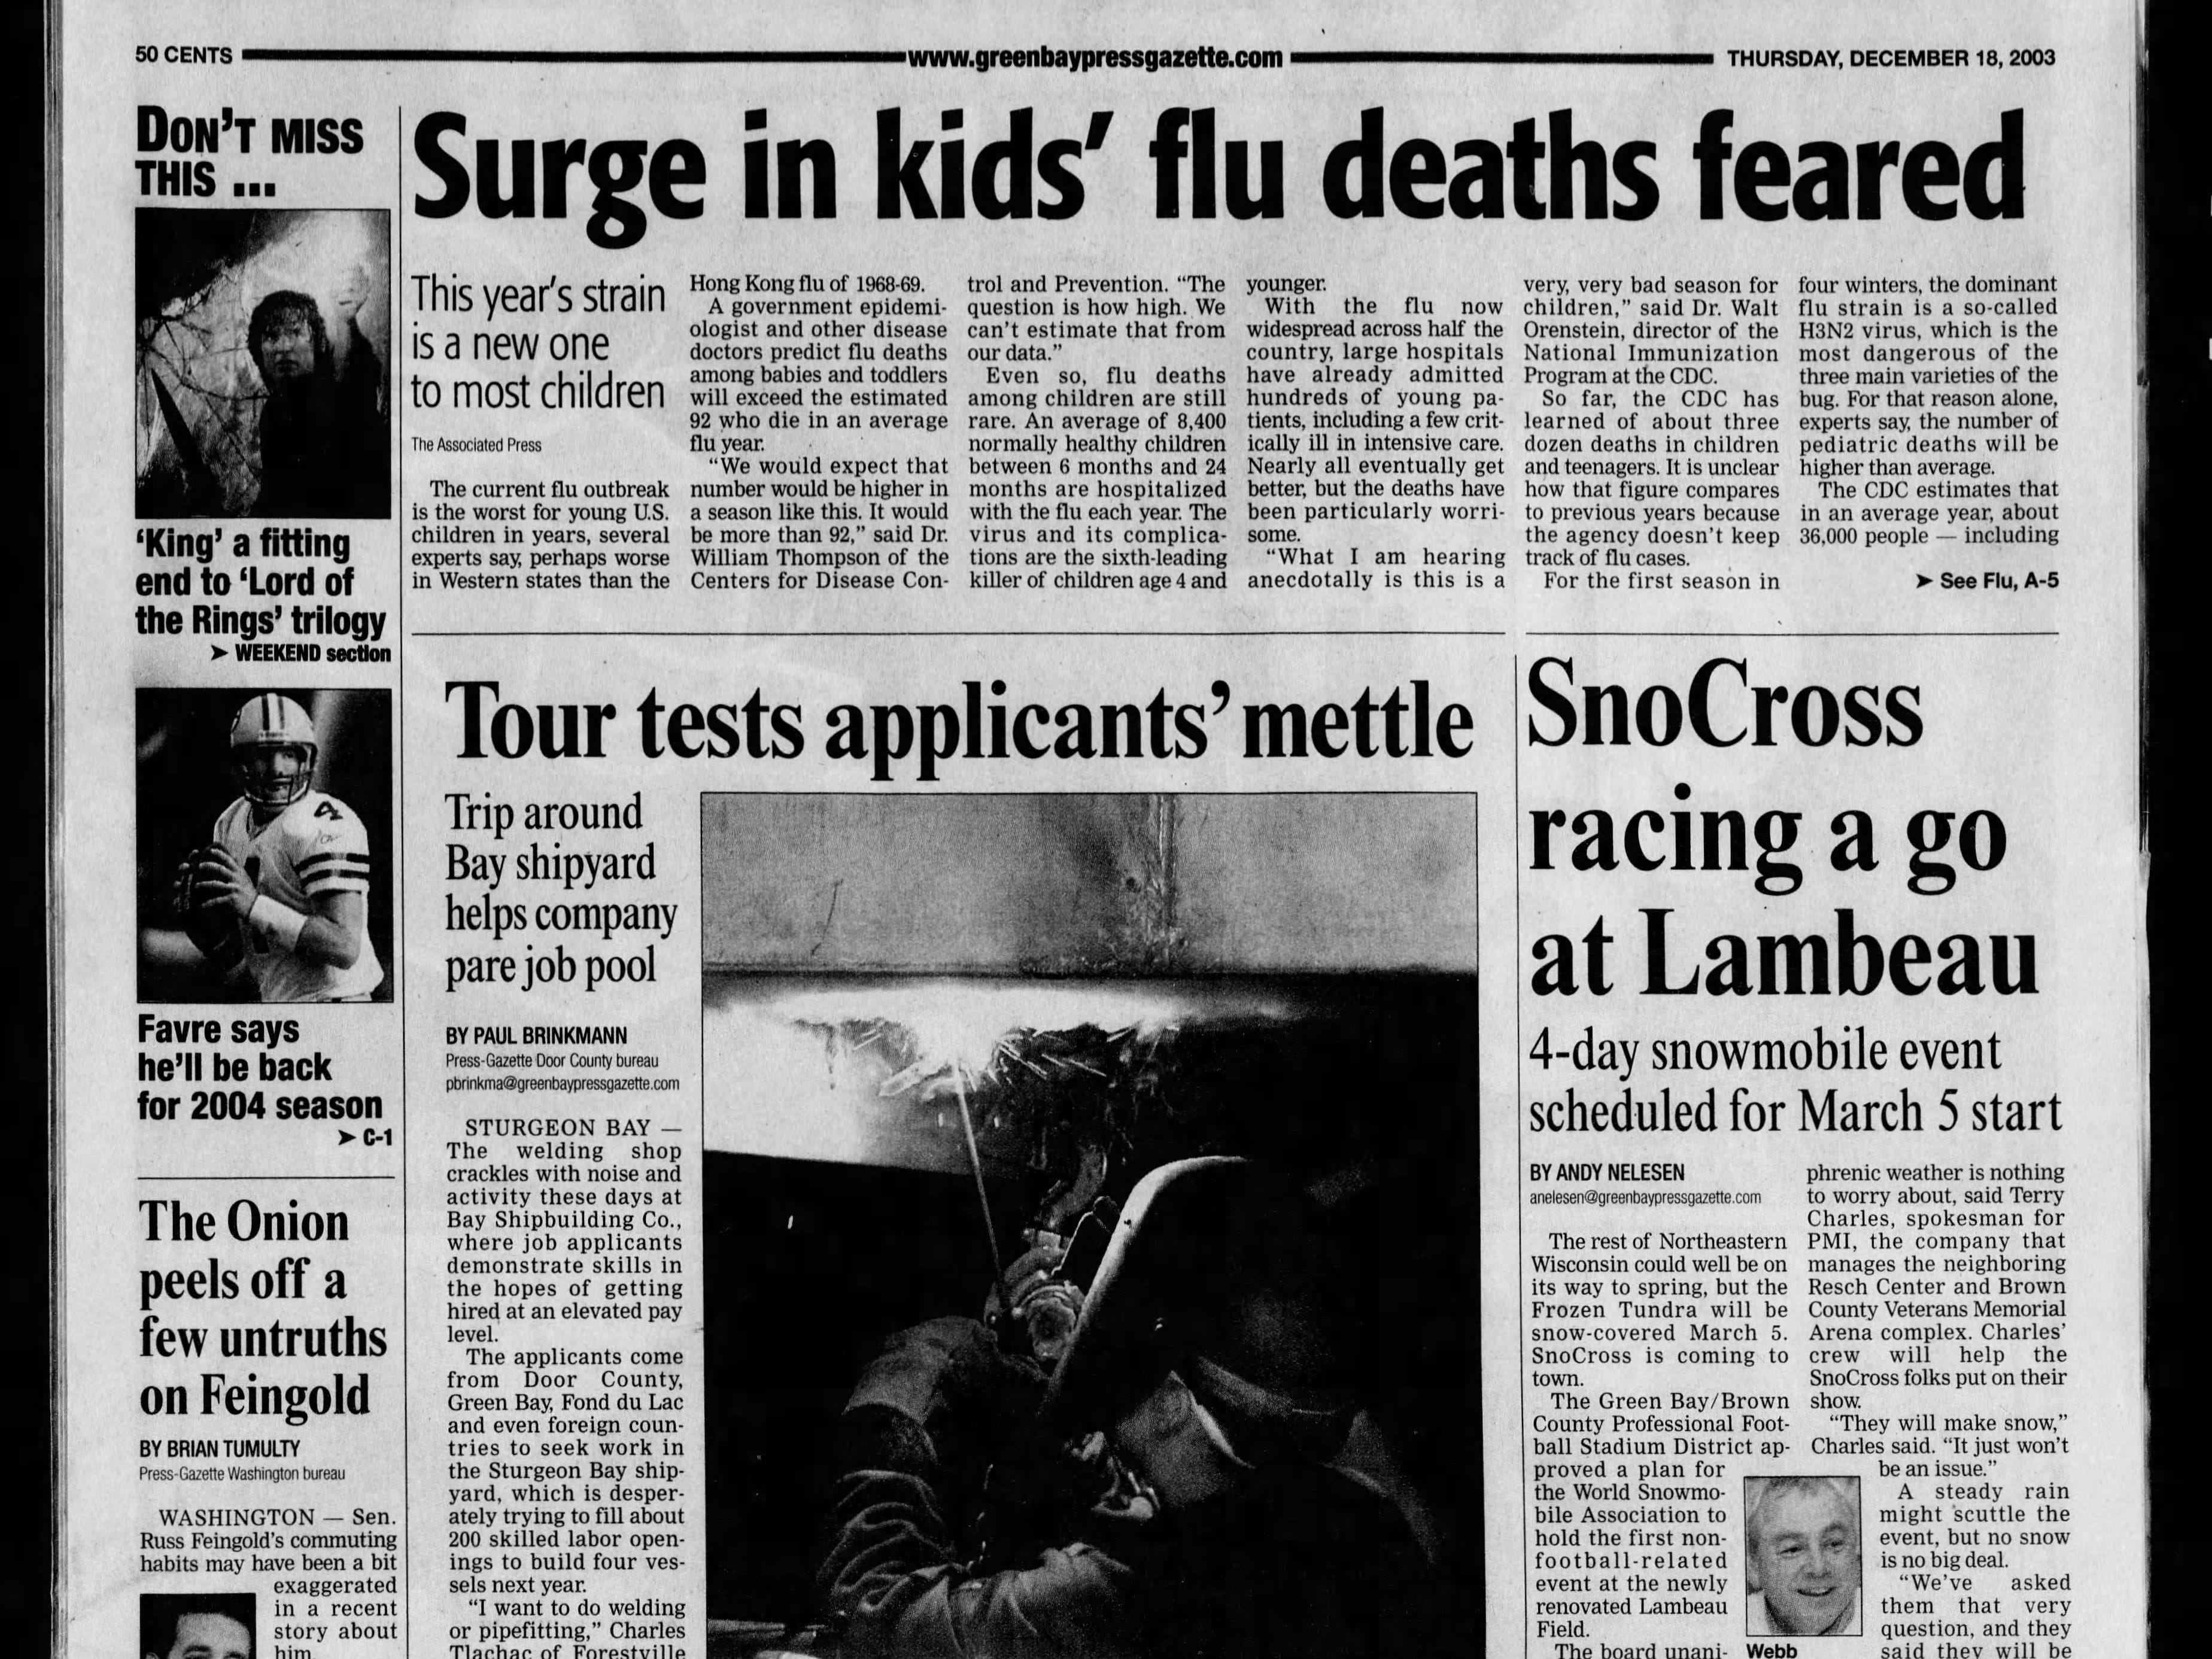 Today in History: Dec. 18, 2003